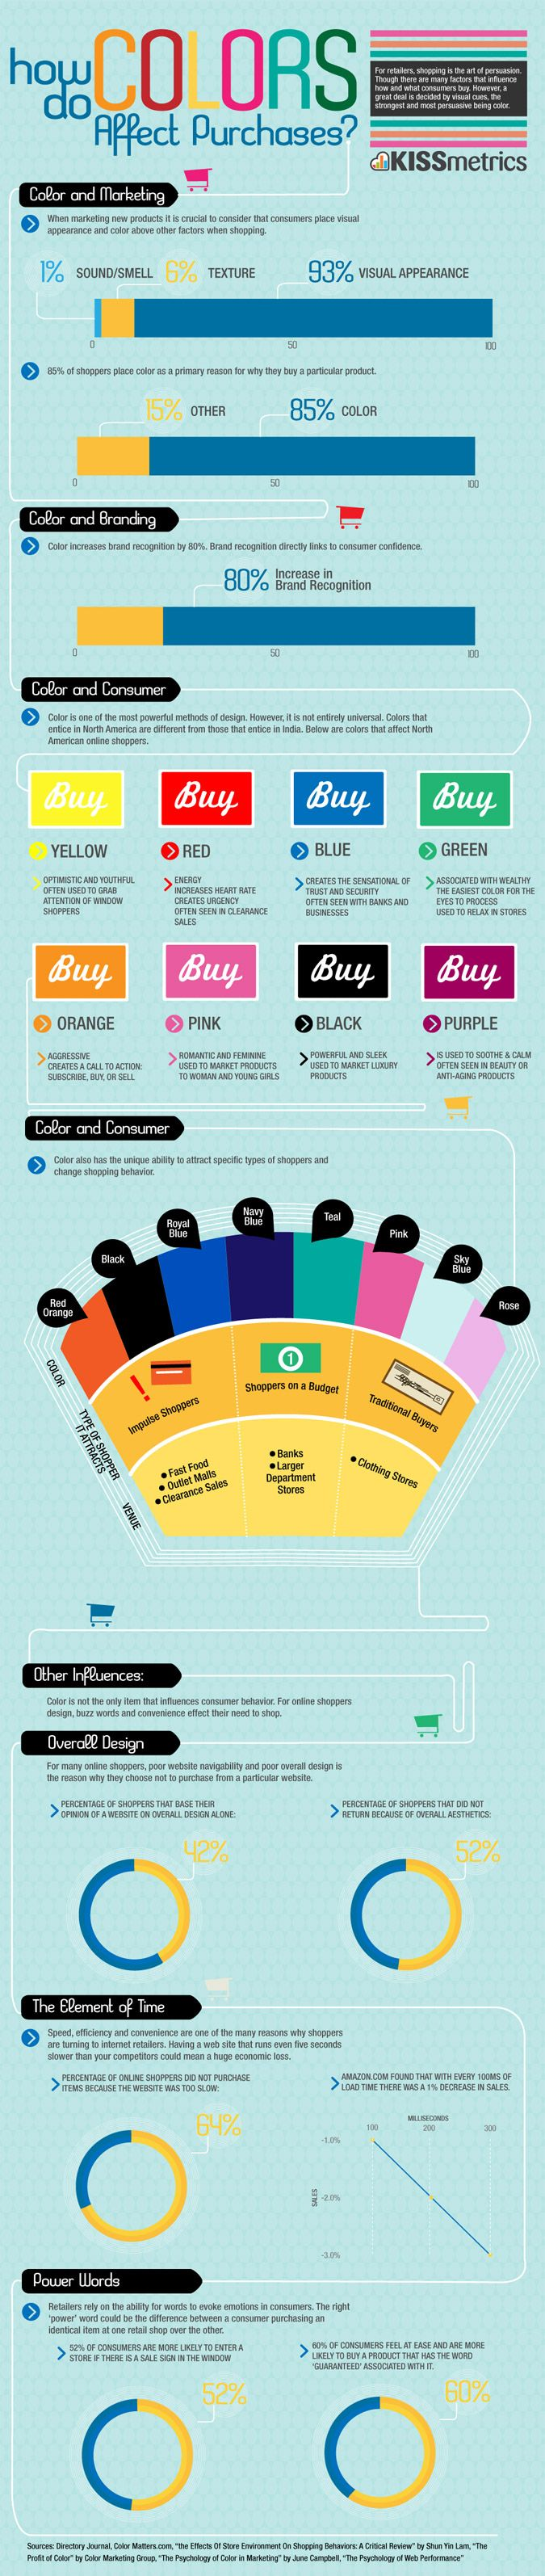 How Color Influences Marketing Love it! Check out our colors here at http://www.simplysuespeaks.com